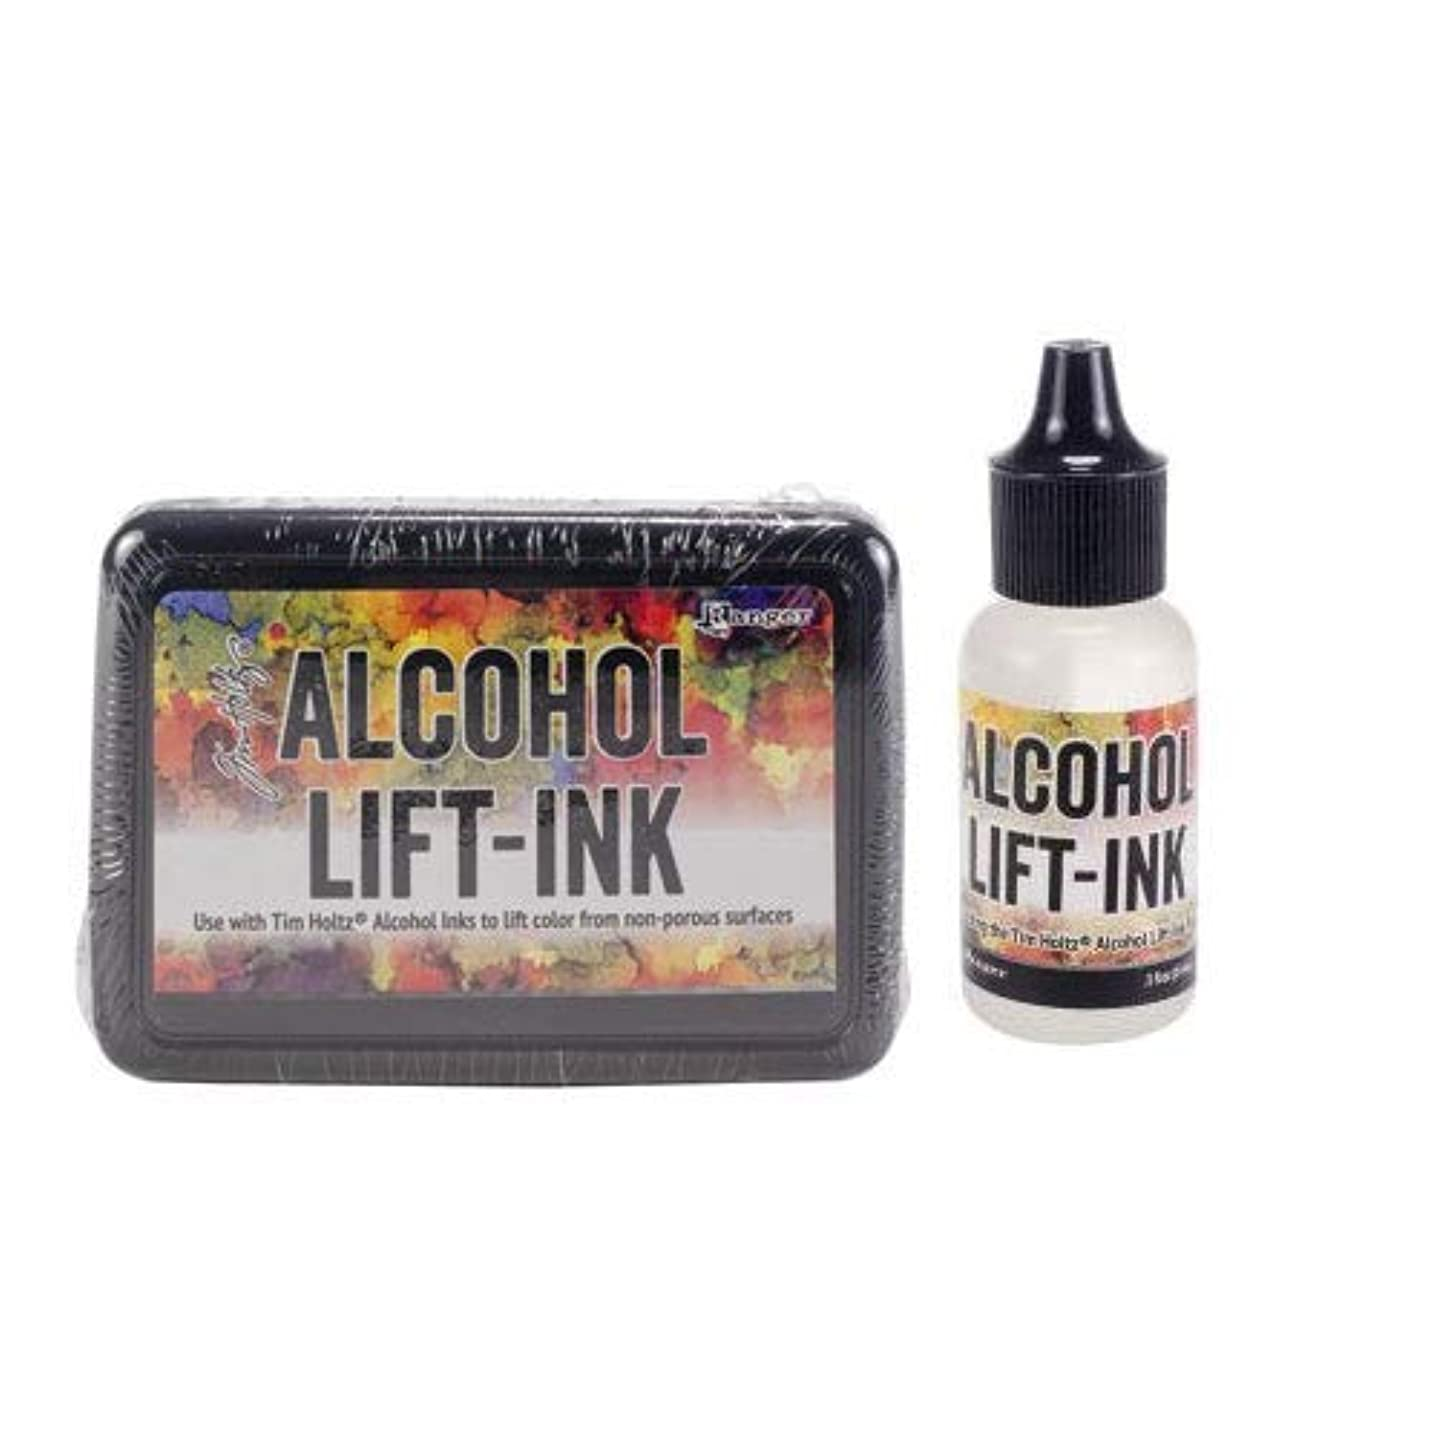 Tim Holtz Alcohol Lift Ink & Ink Pad